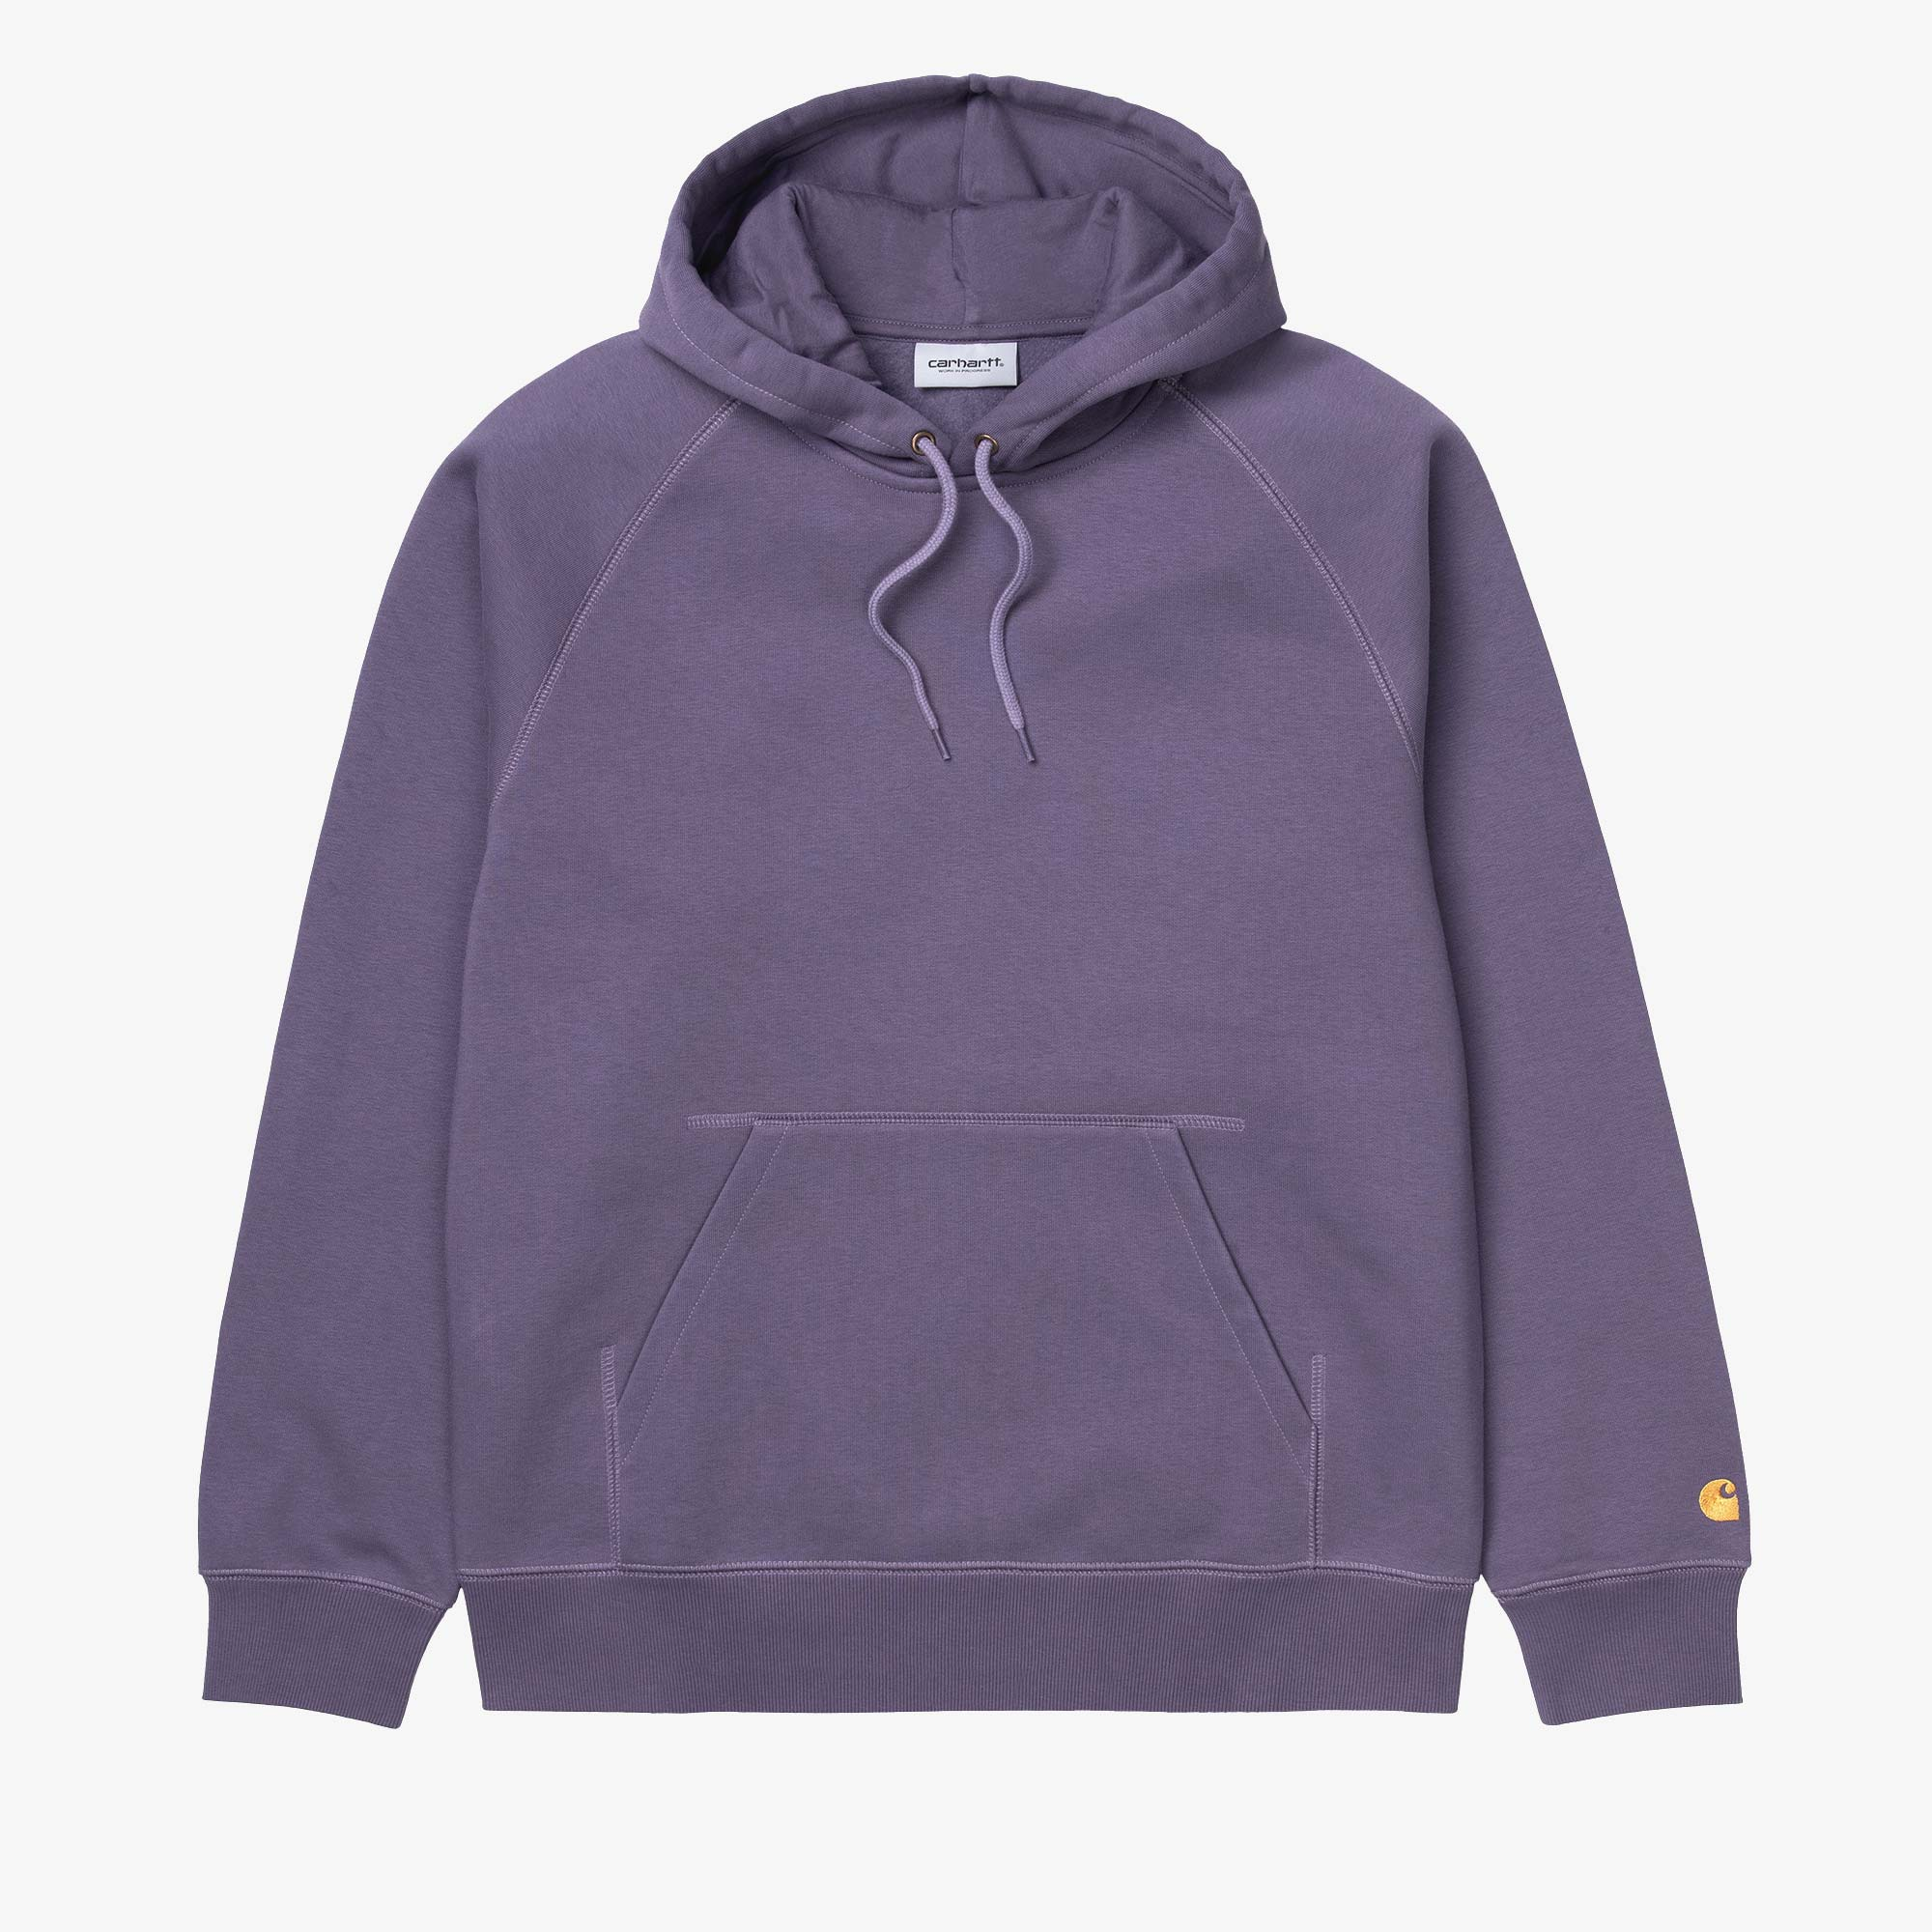 Carhartt WIP Hooded Chase Sweat - Provence / Gold 1